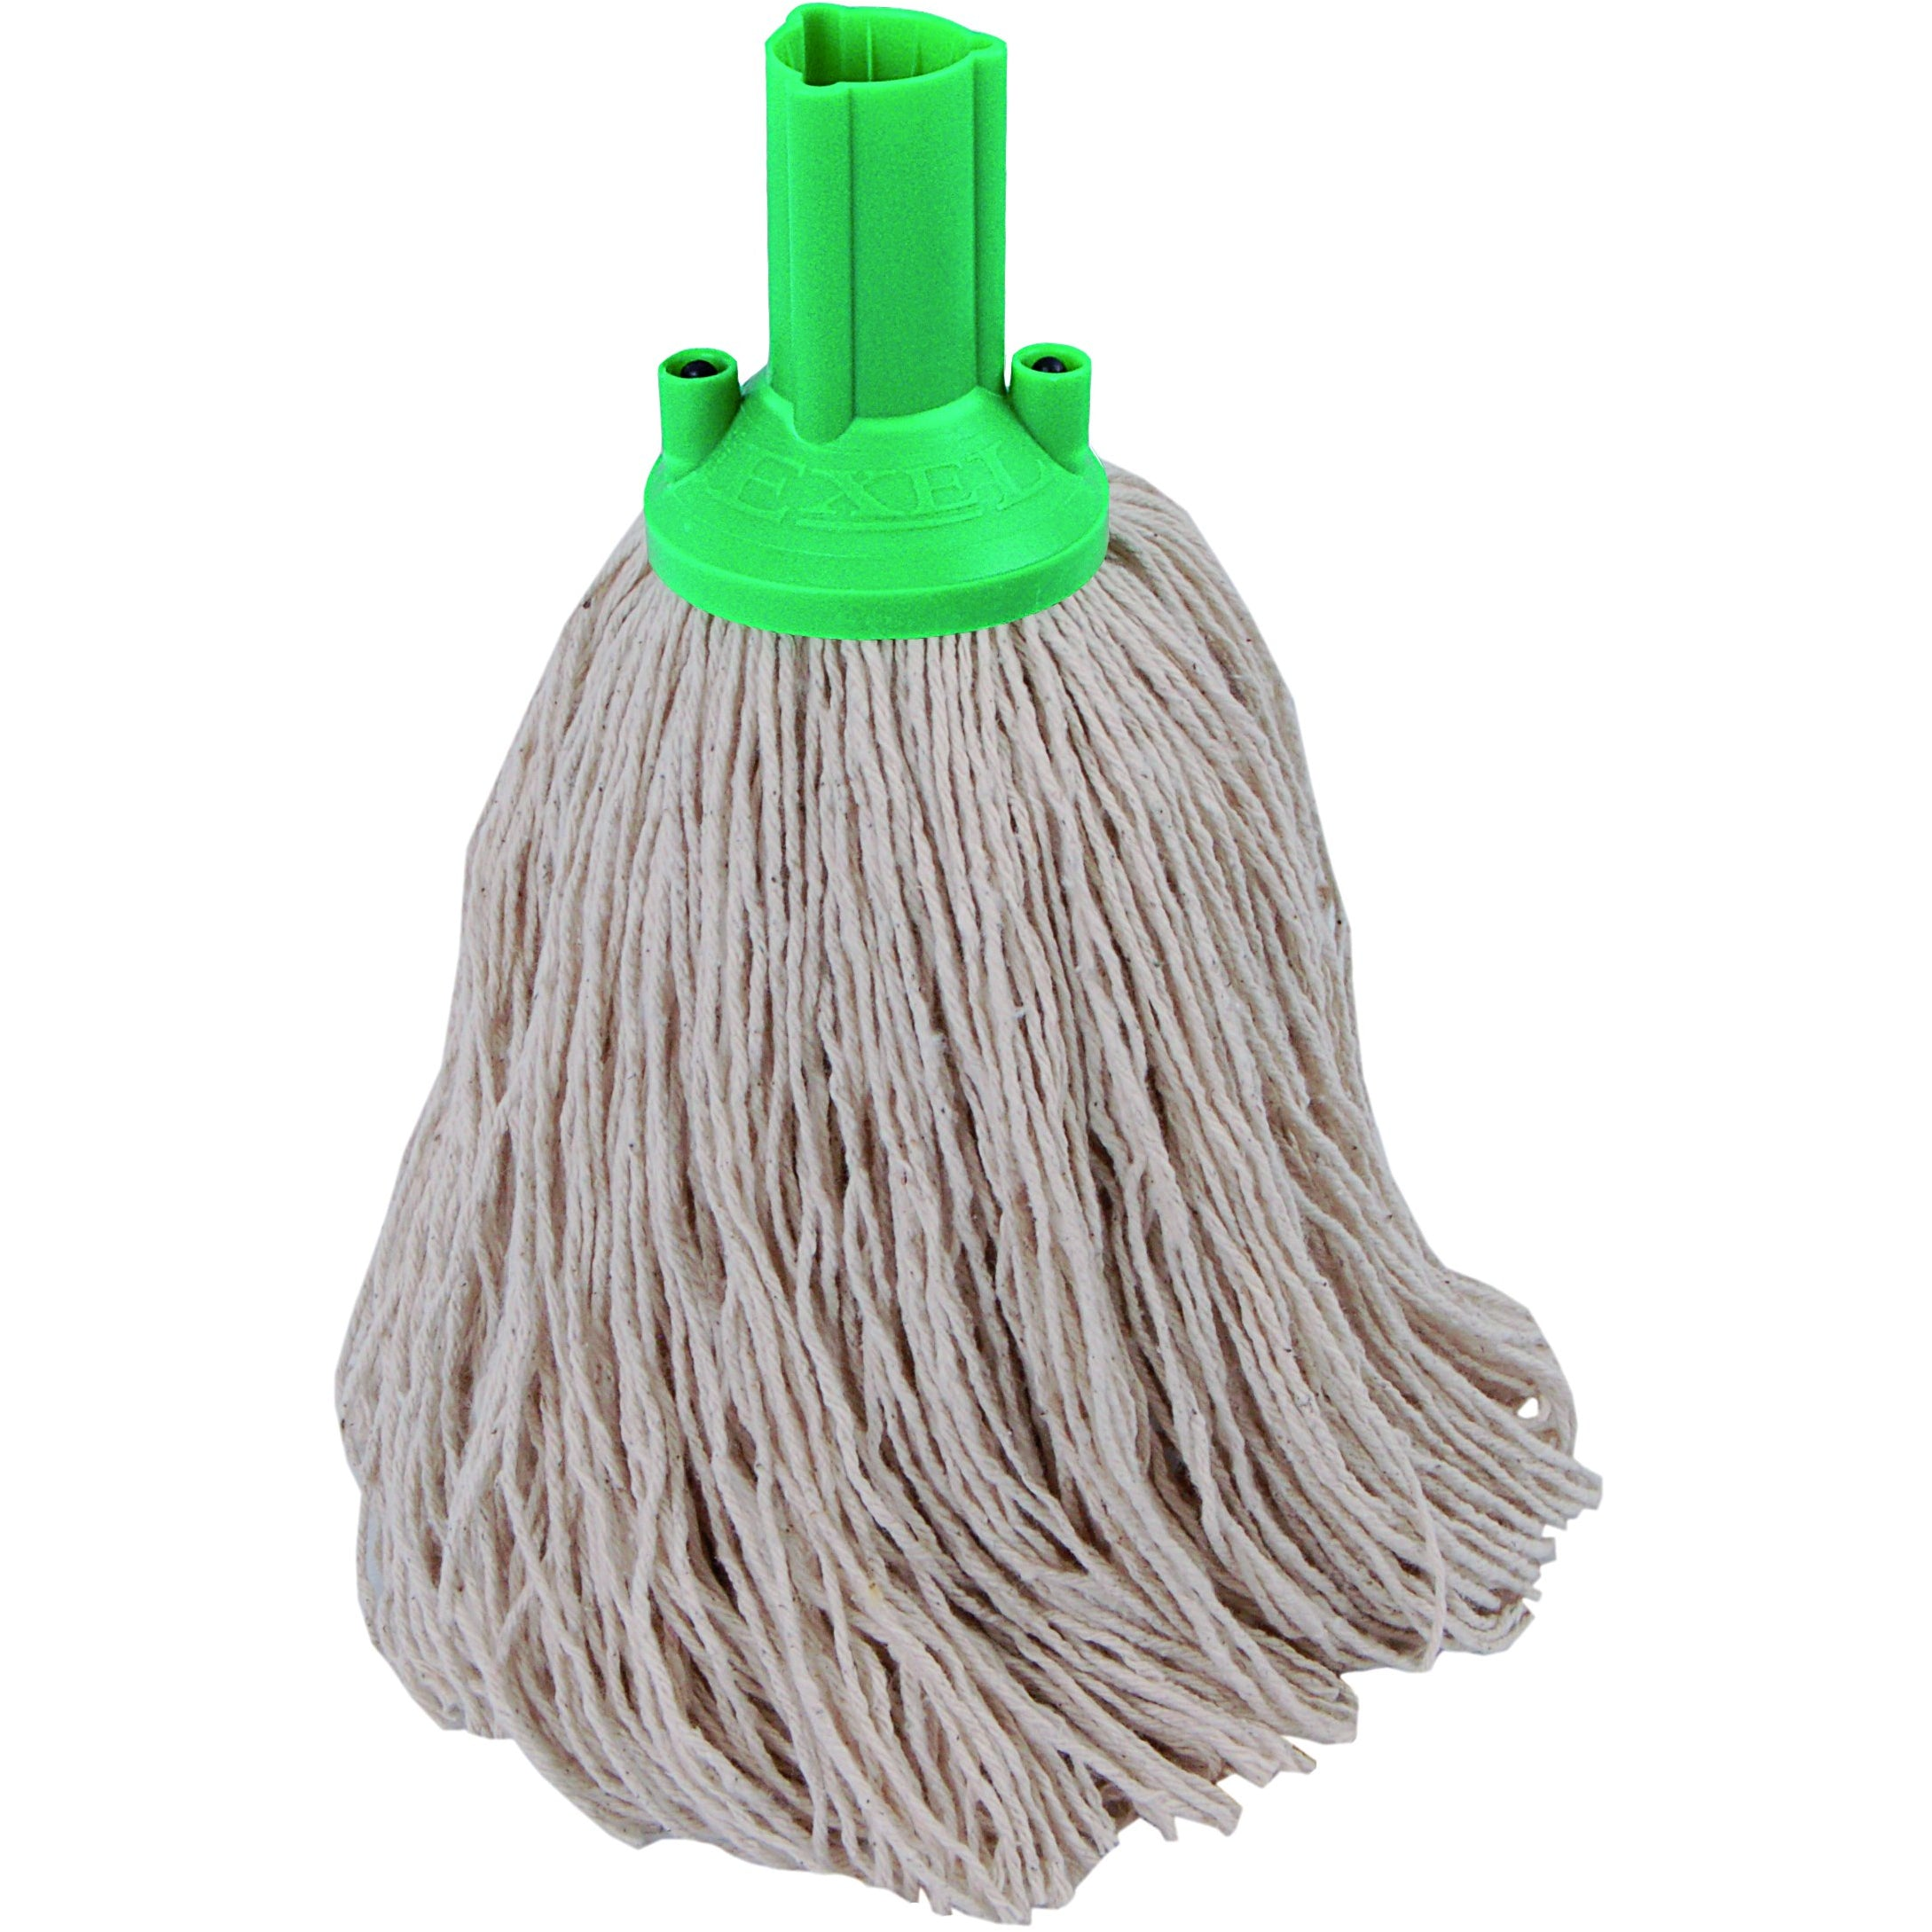 Twine Yarn Socket Mop 200G Excel Fitting - Case of 60 - Green Colour Coding